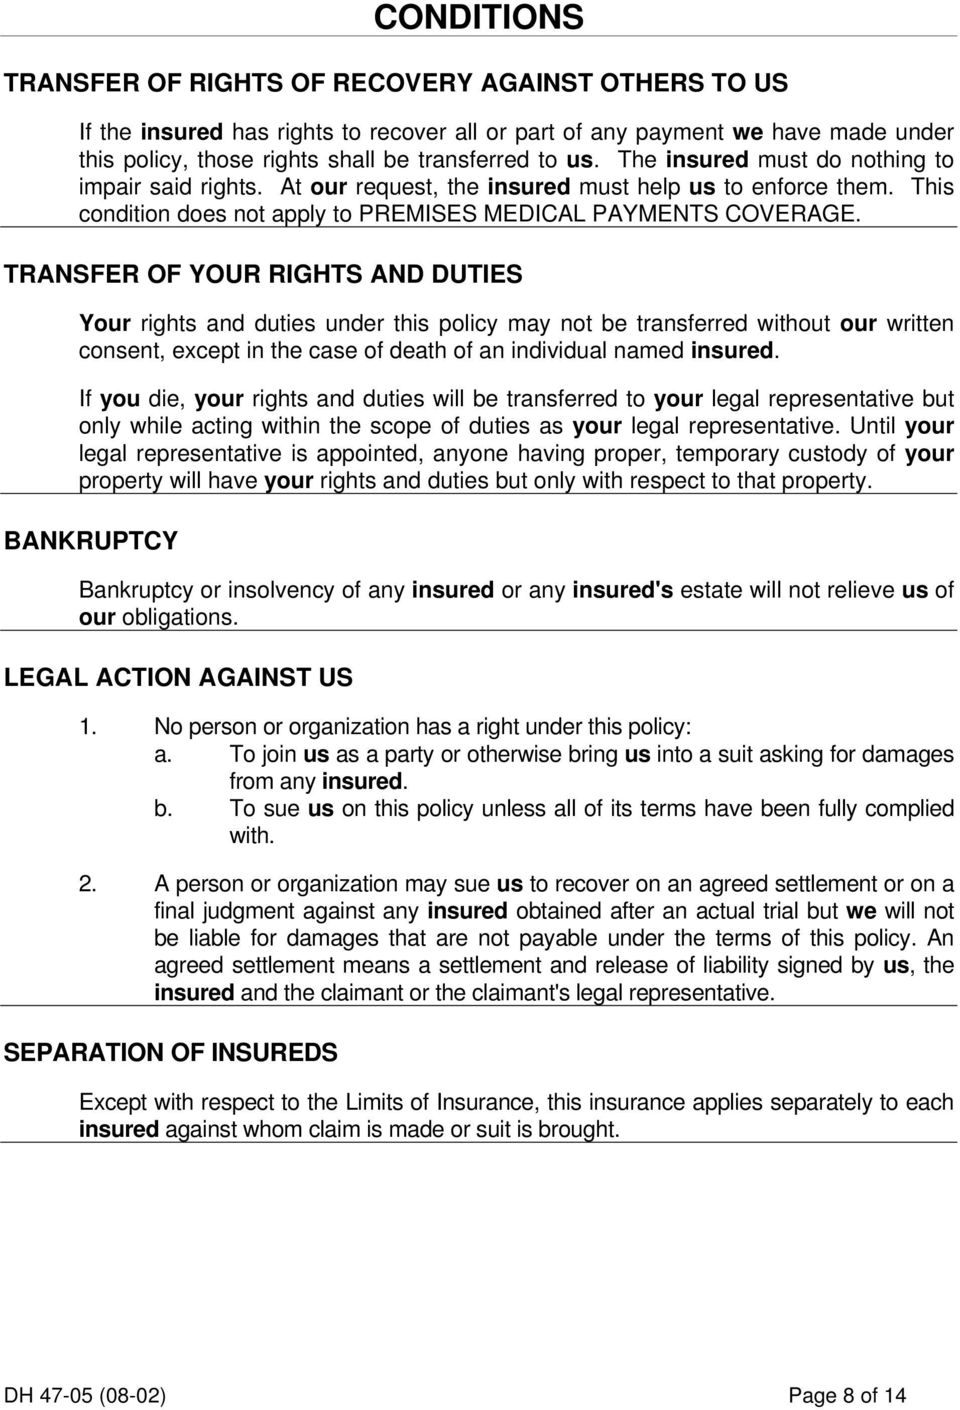 TRANSFER OF YOUR RIGHTS AND DUTIES Your rights and duties under this policy may not be transferred without our written consent, except in the case of death of an individual named insured.